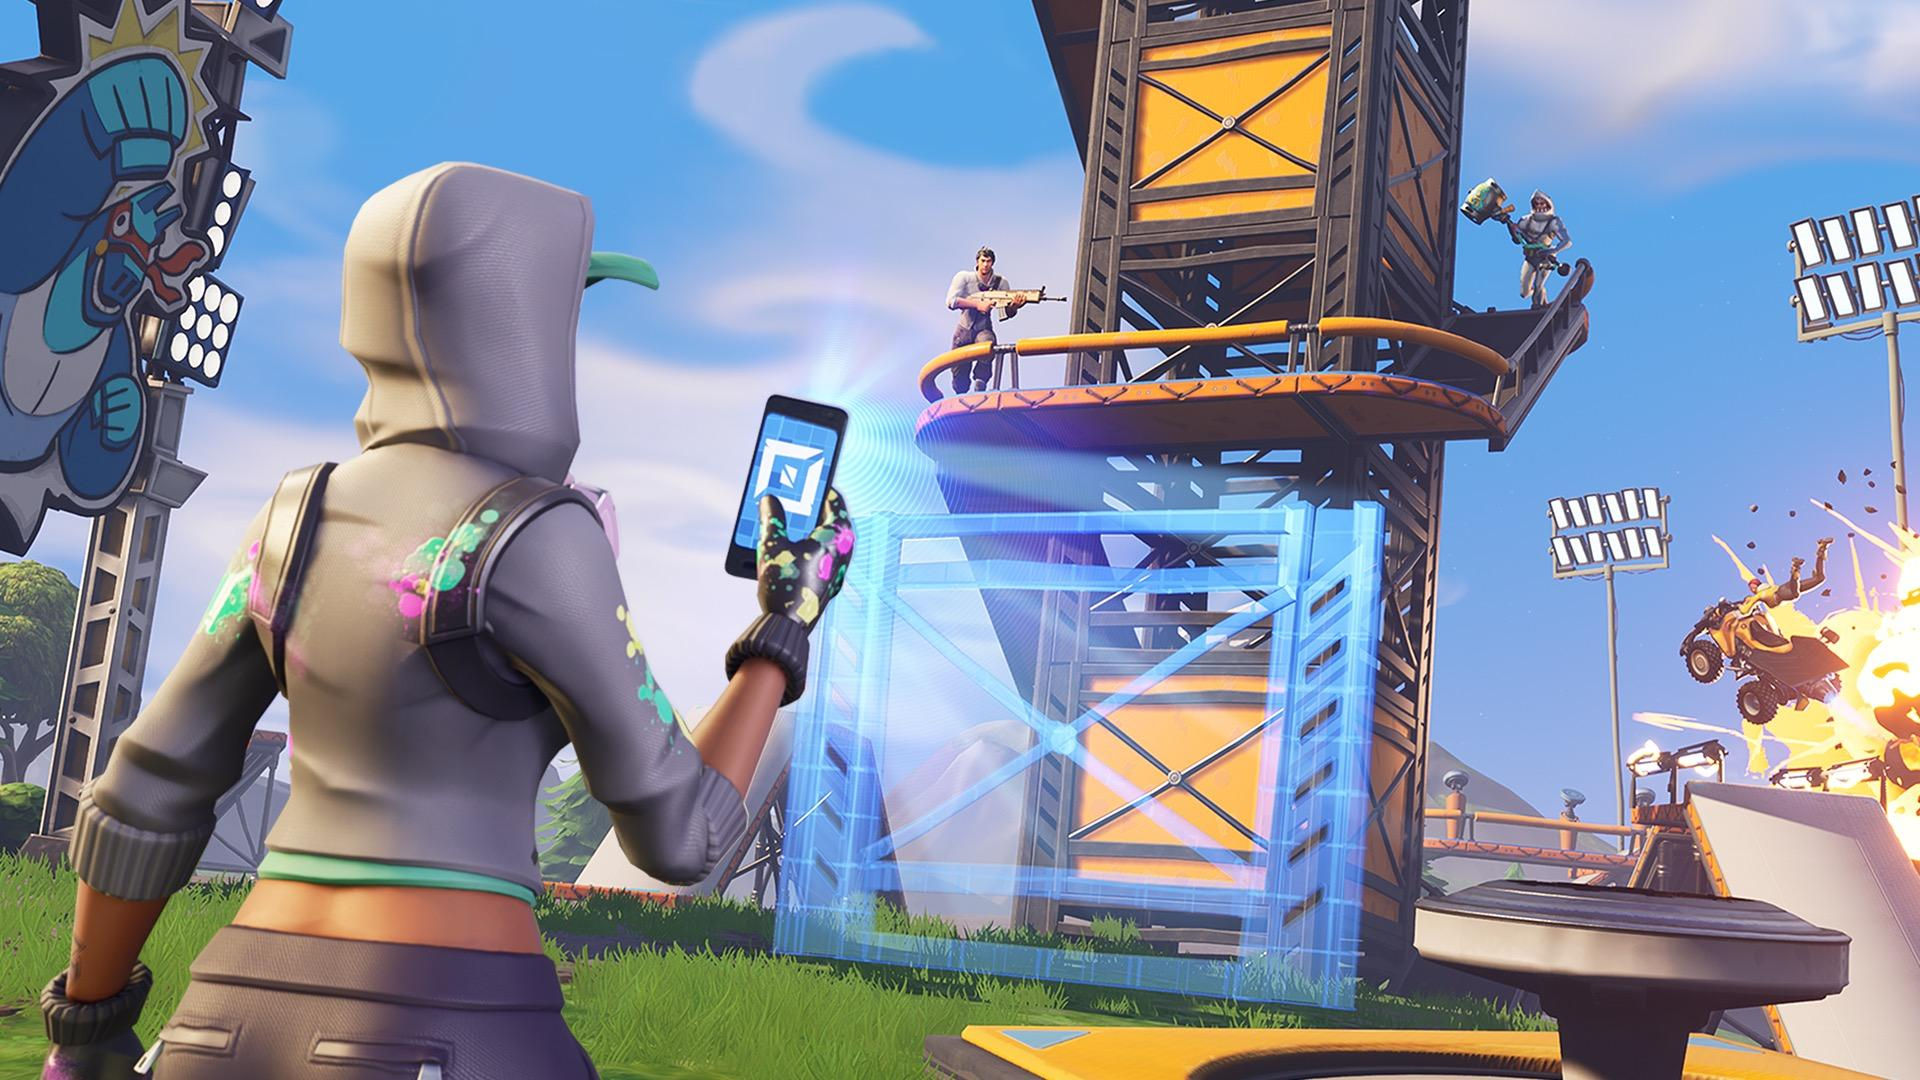 Fortnite Creative announced - opening up a whole new way to play!